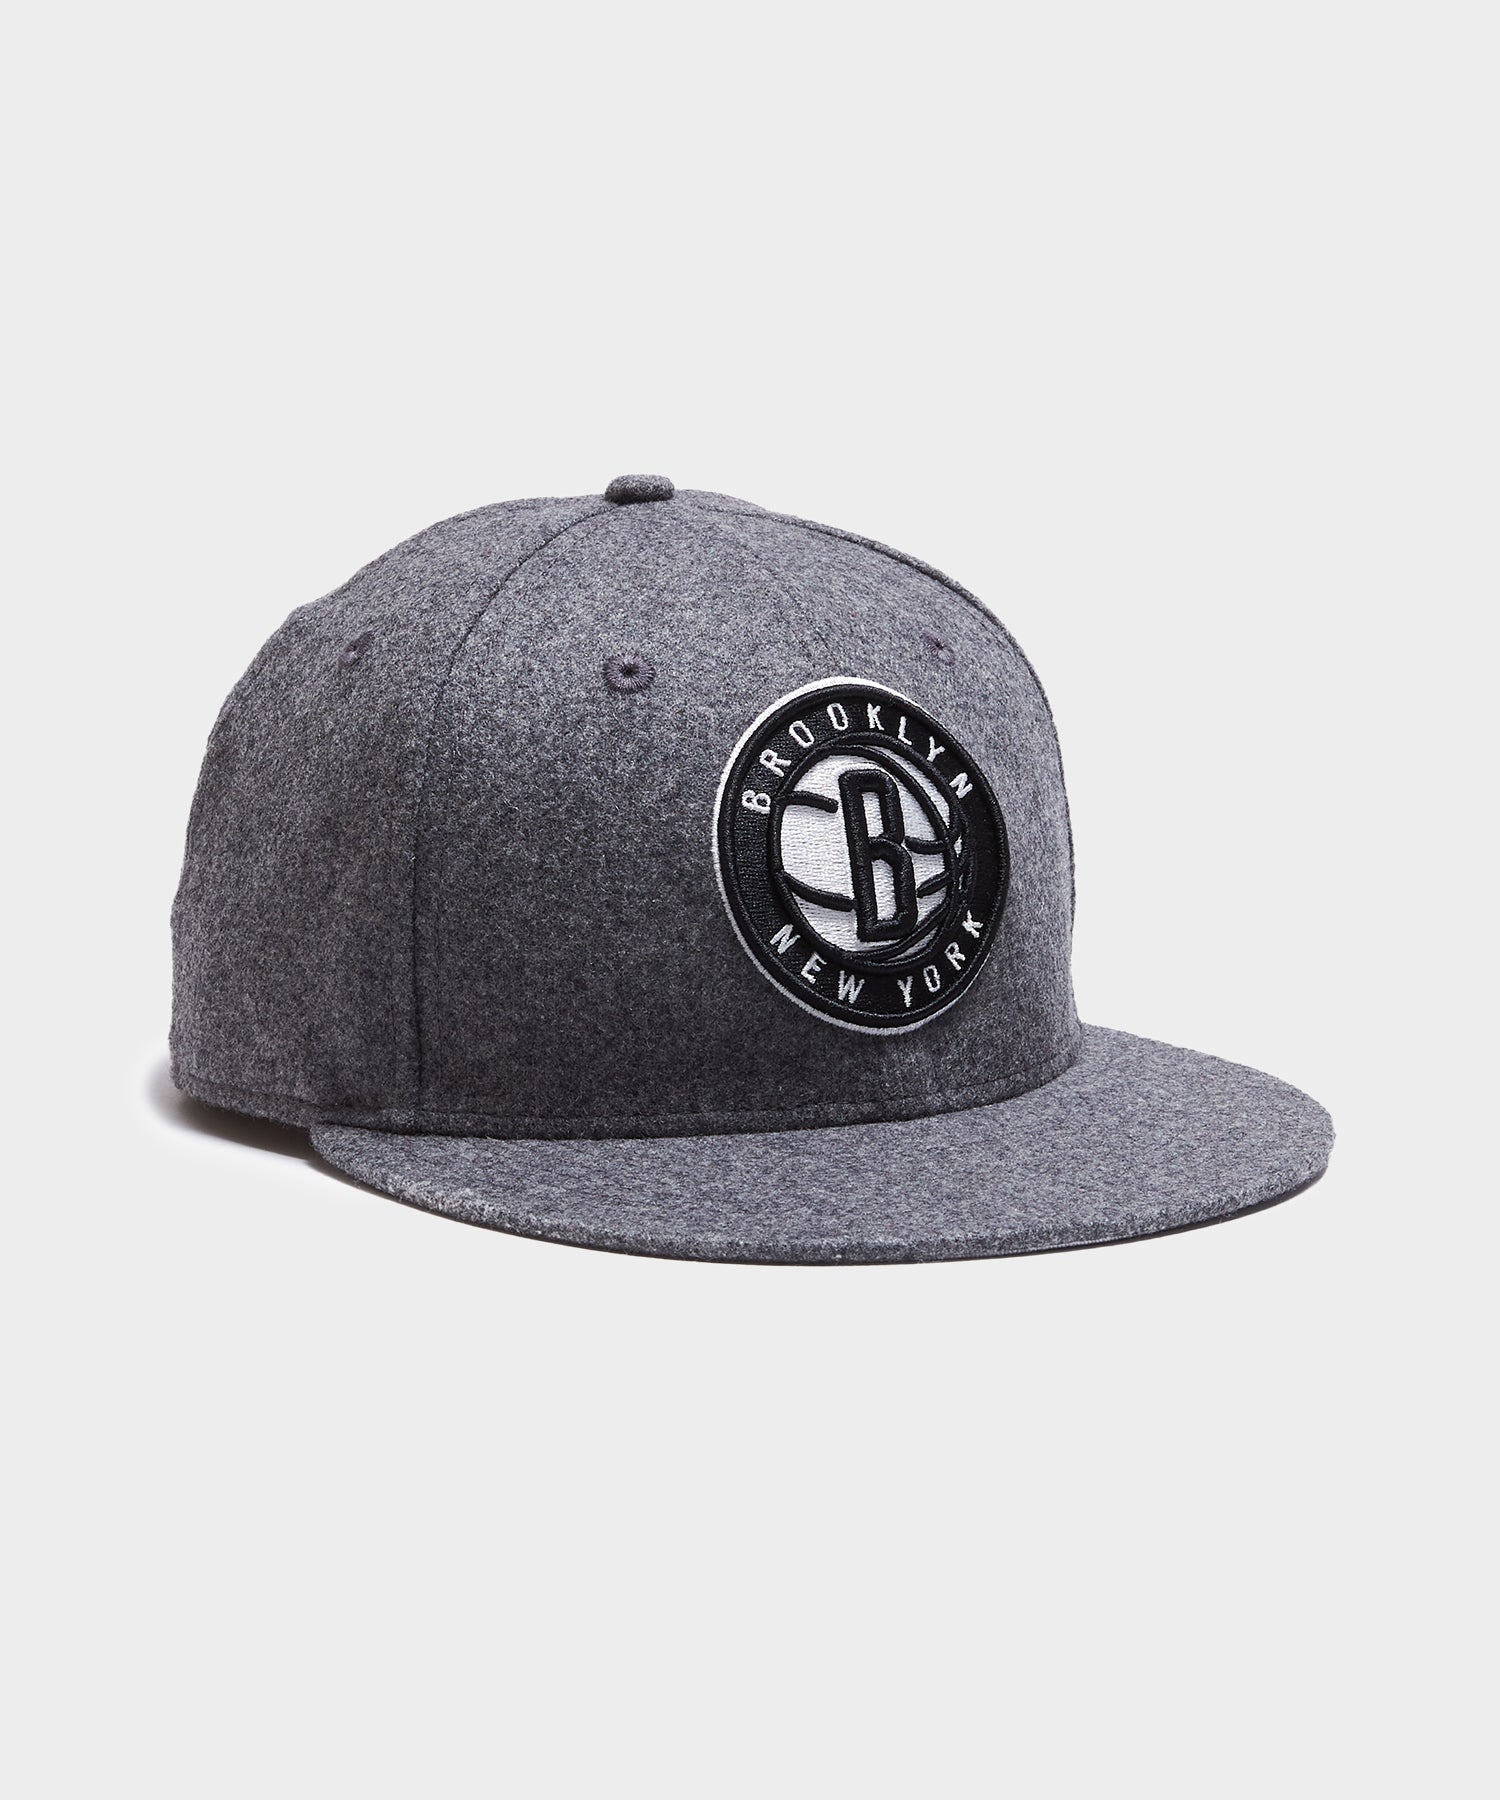 Todd Snyder + New Era New York Pack Brooklyn Nets